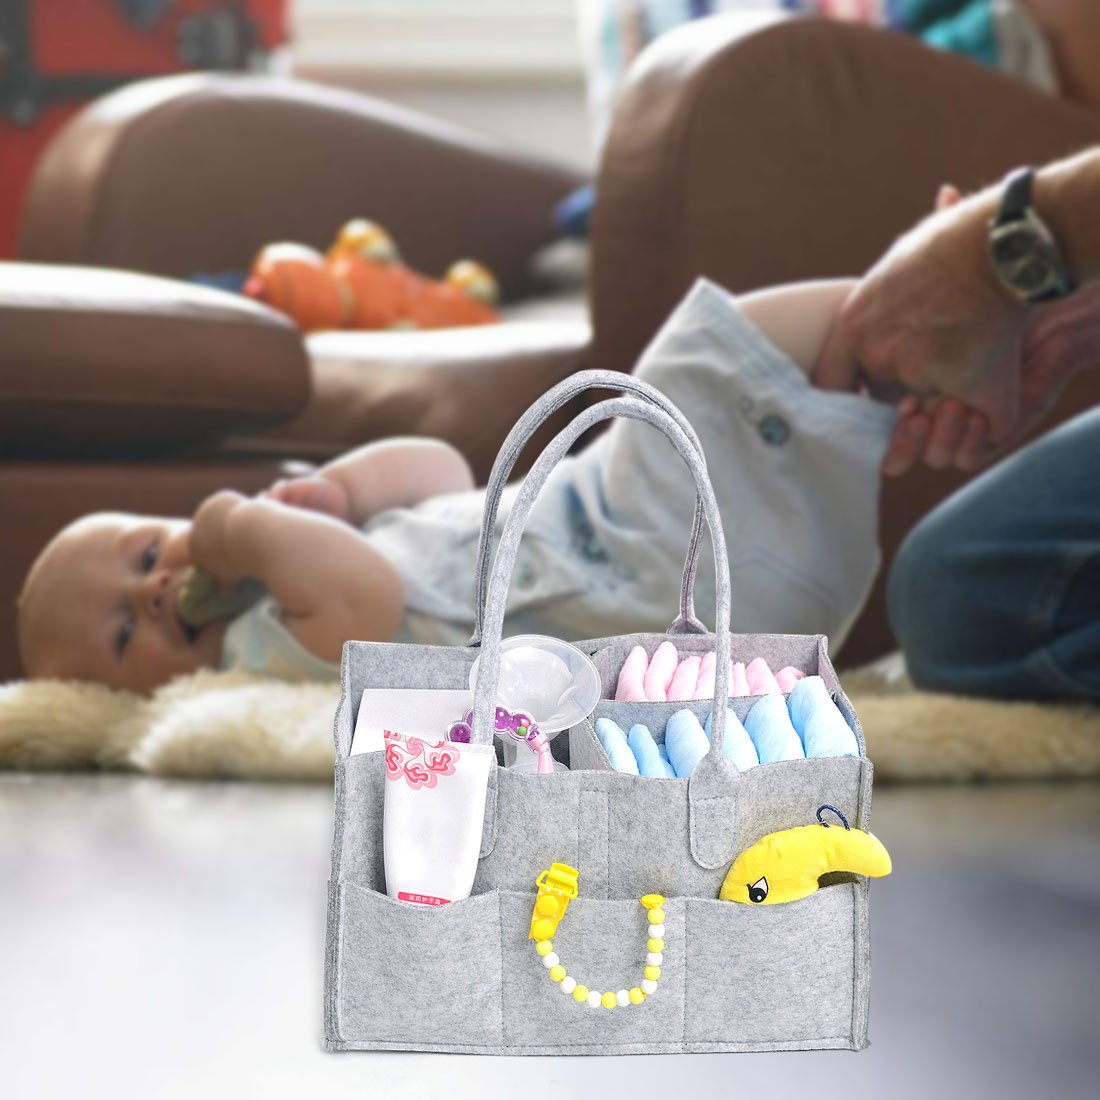 Saien Baby Diaper Caddy Organizer Portable Nursery Storage Tote for Diapers Wipes Gray Gray